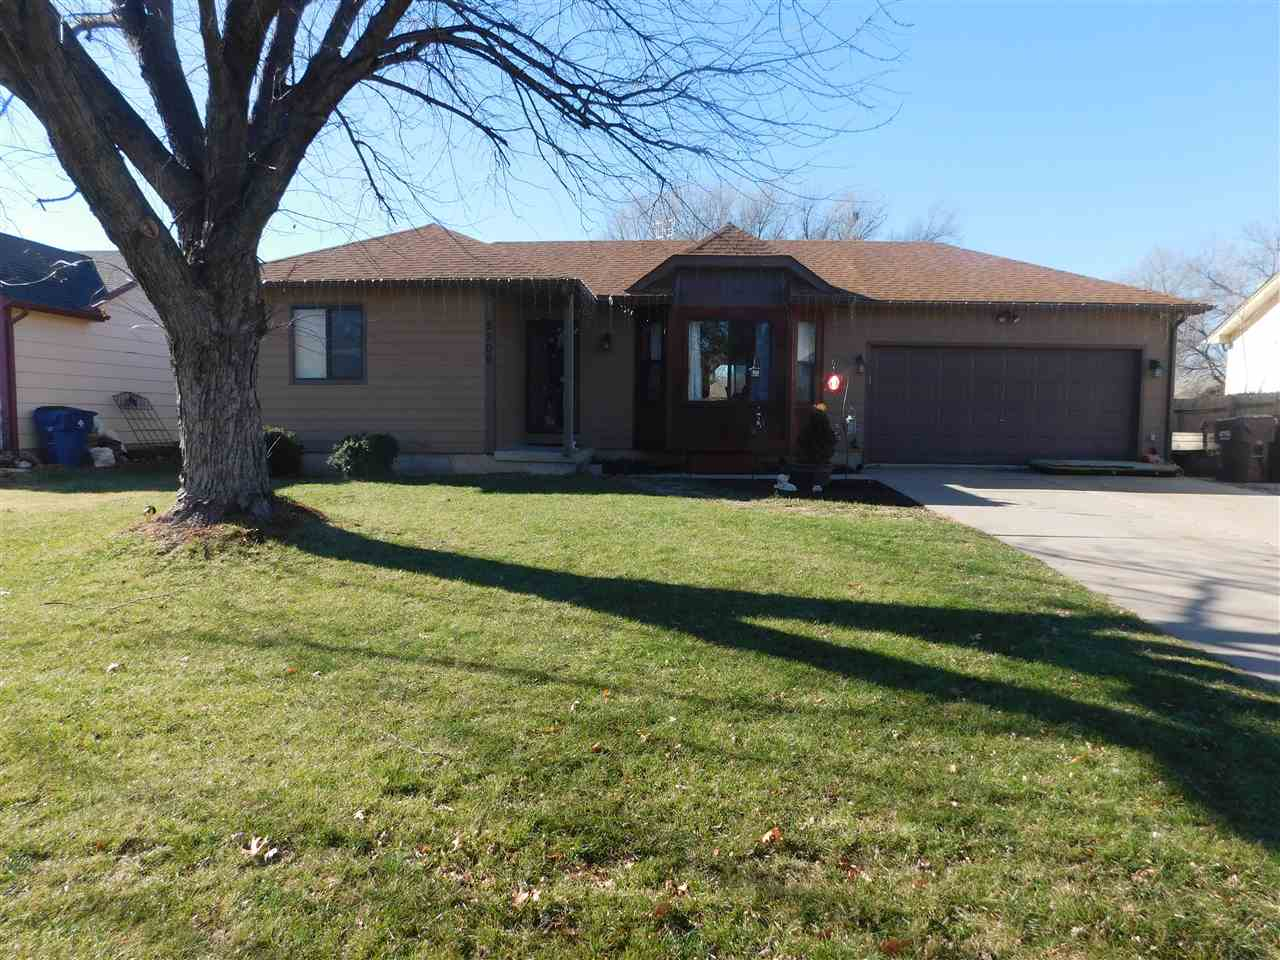 Priced to sell fast! Beautiful home with 2 baths & 2BR + 2 nonconforming bedrooms in quiet neighborh